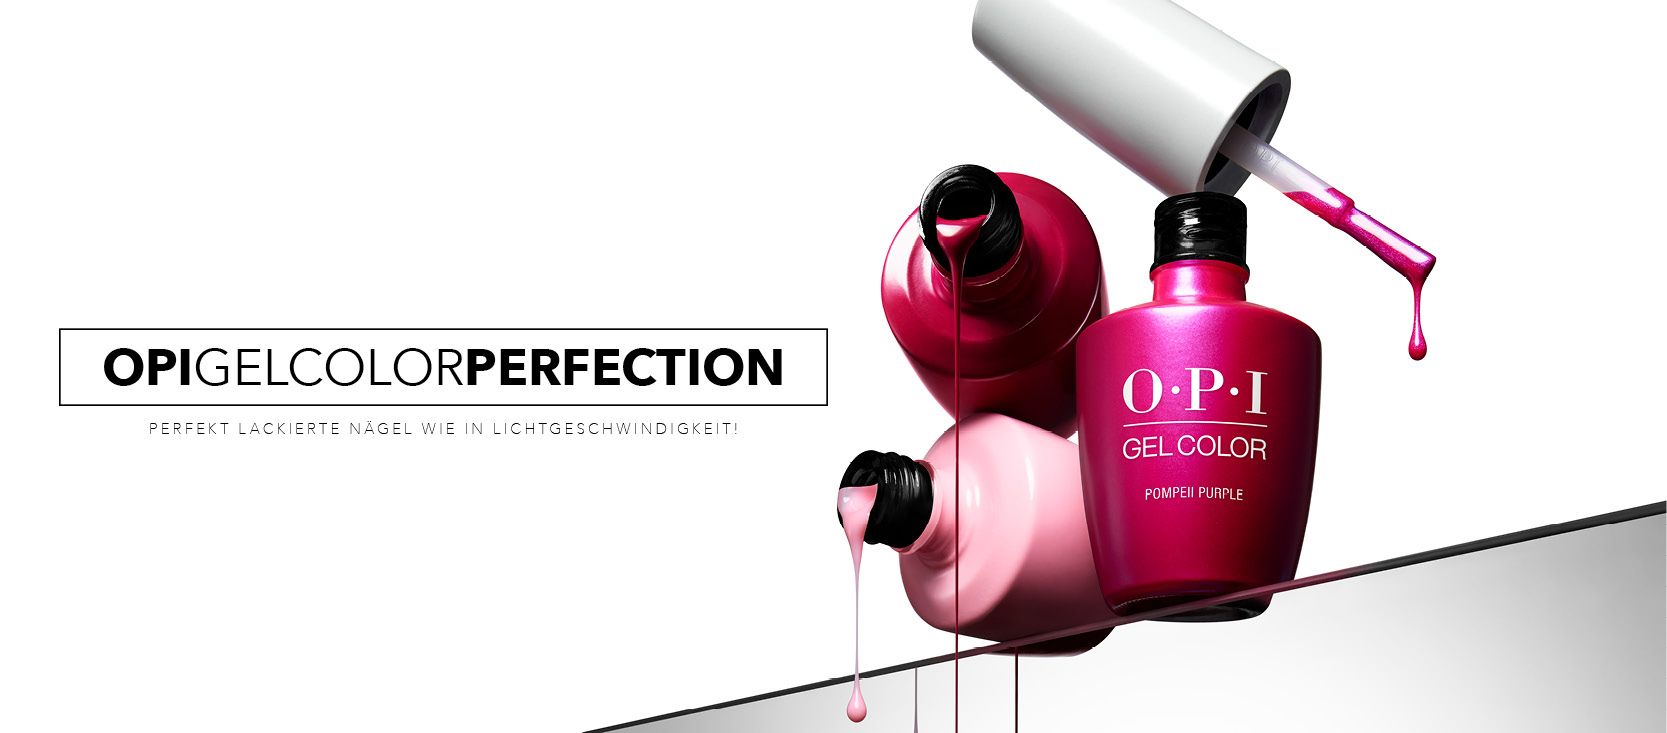 OPI GelColor in Perfektion